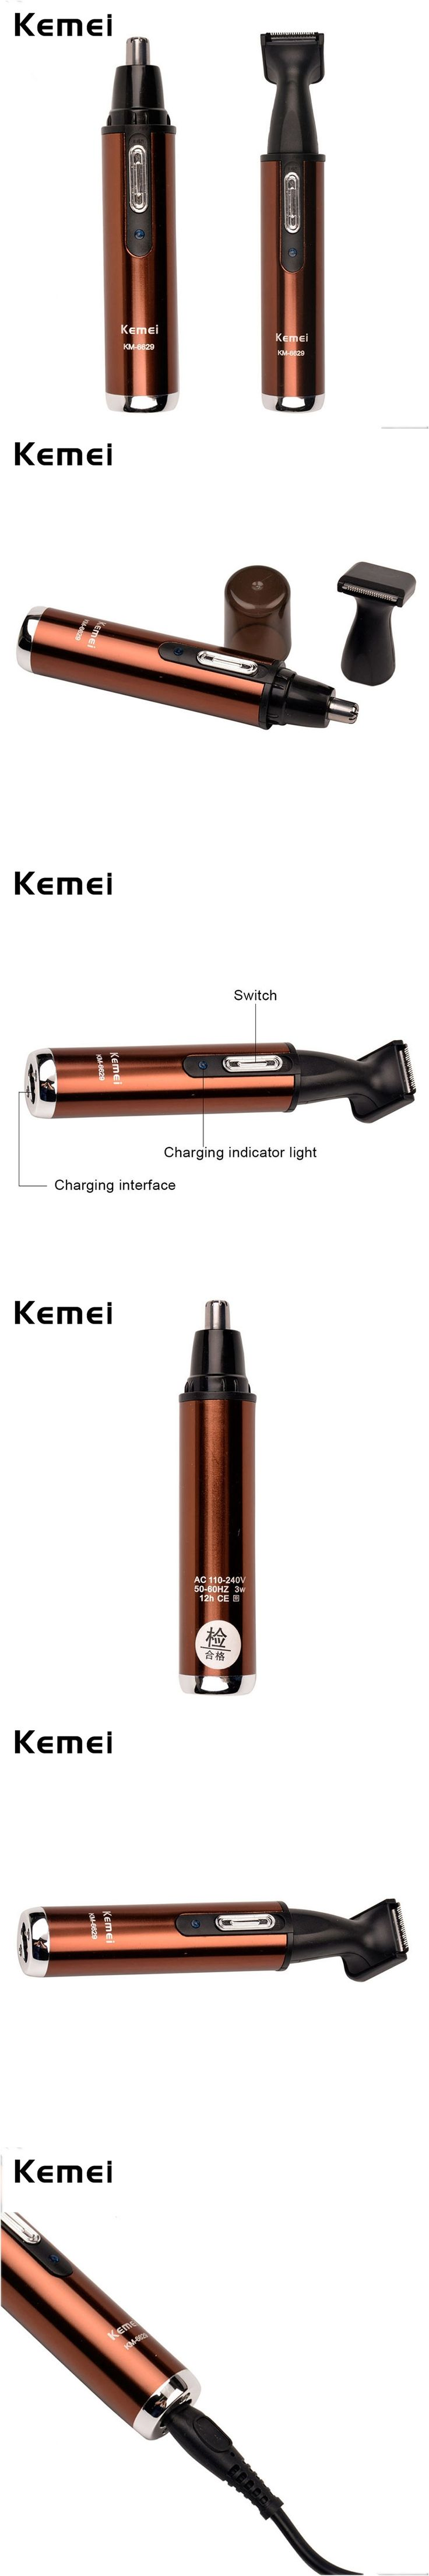 Kemei Electric Nose Hair Trimmer Nose Rechargeable Nose Cutter Hair Cutting machine Beard Clipper Sideburns with Durable Blade